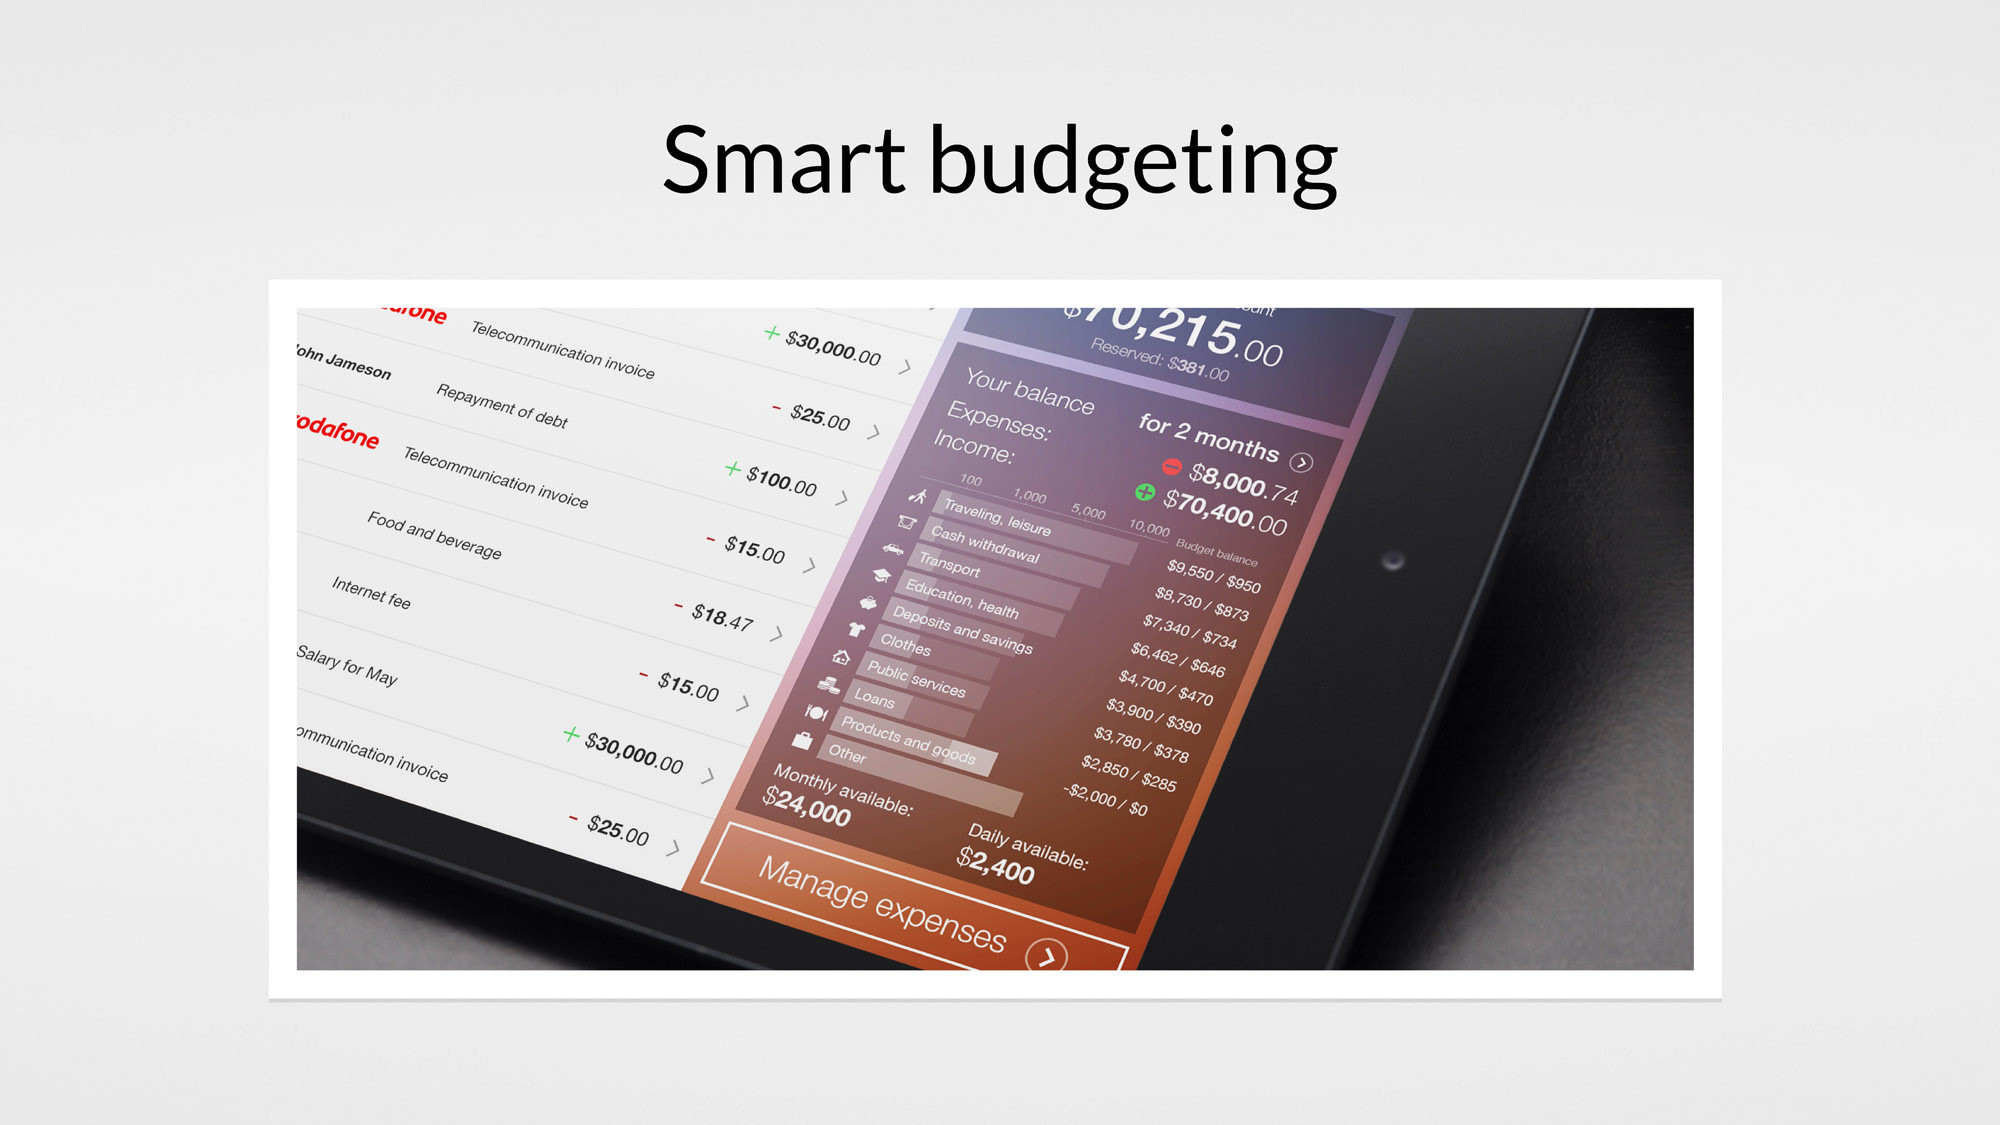 uxda-smart-budgeting-banking-solution